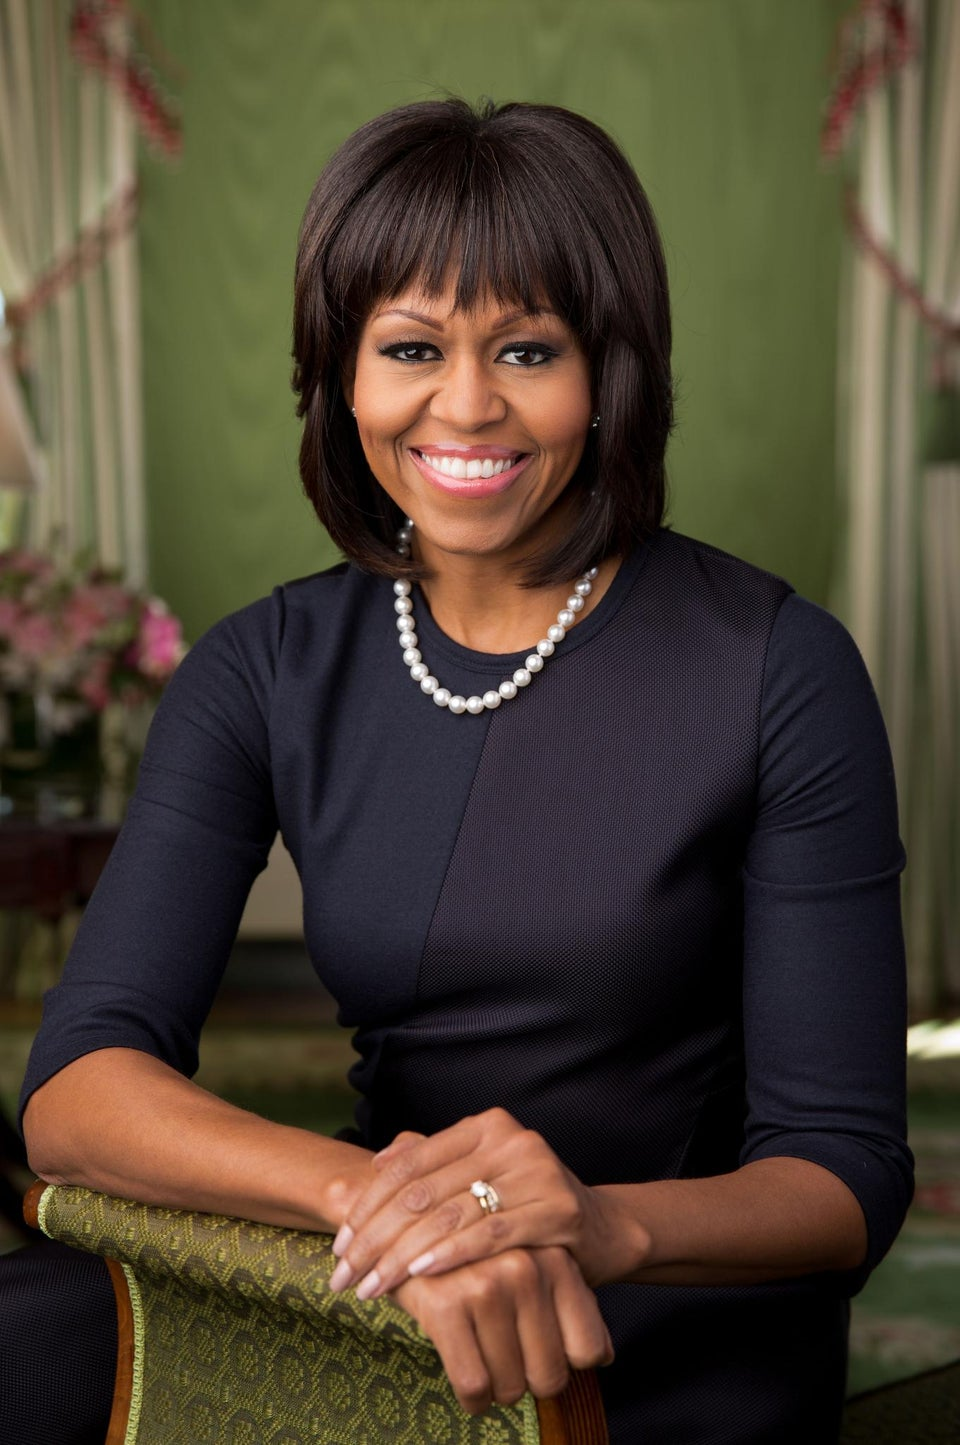 Michelle Obama Talks Healthy Eating and Family with SiriusXM